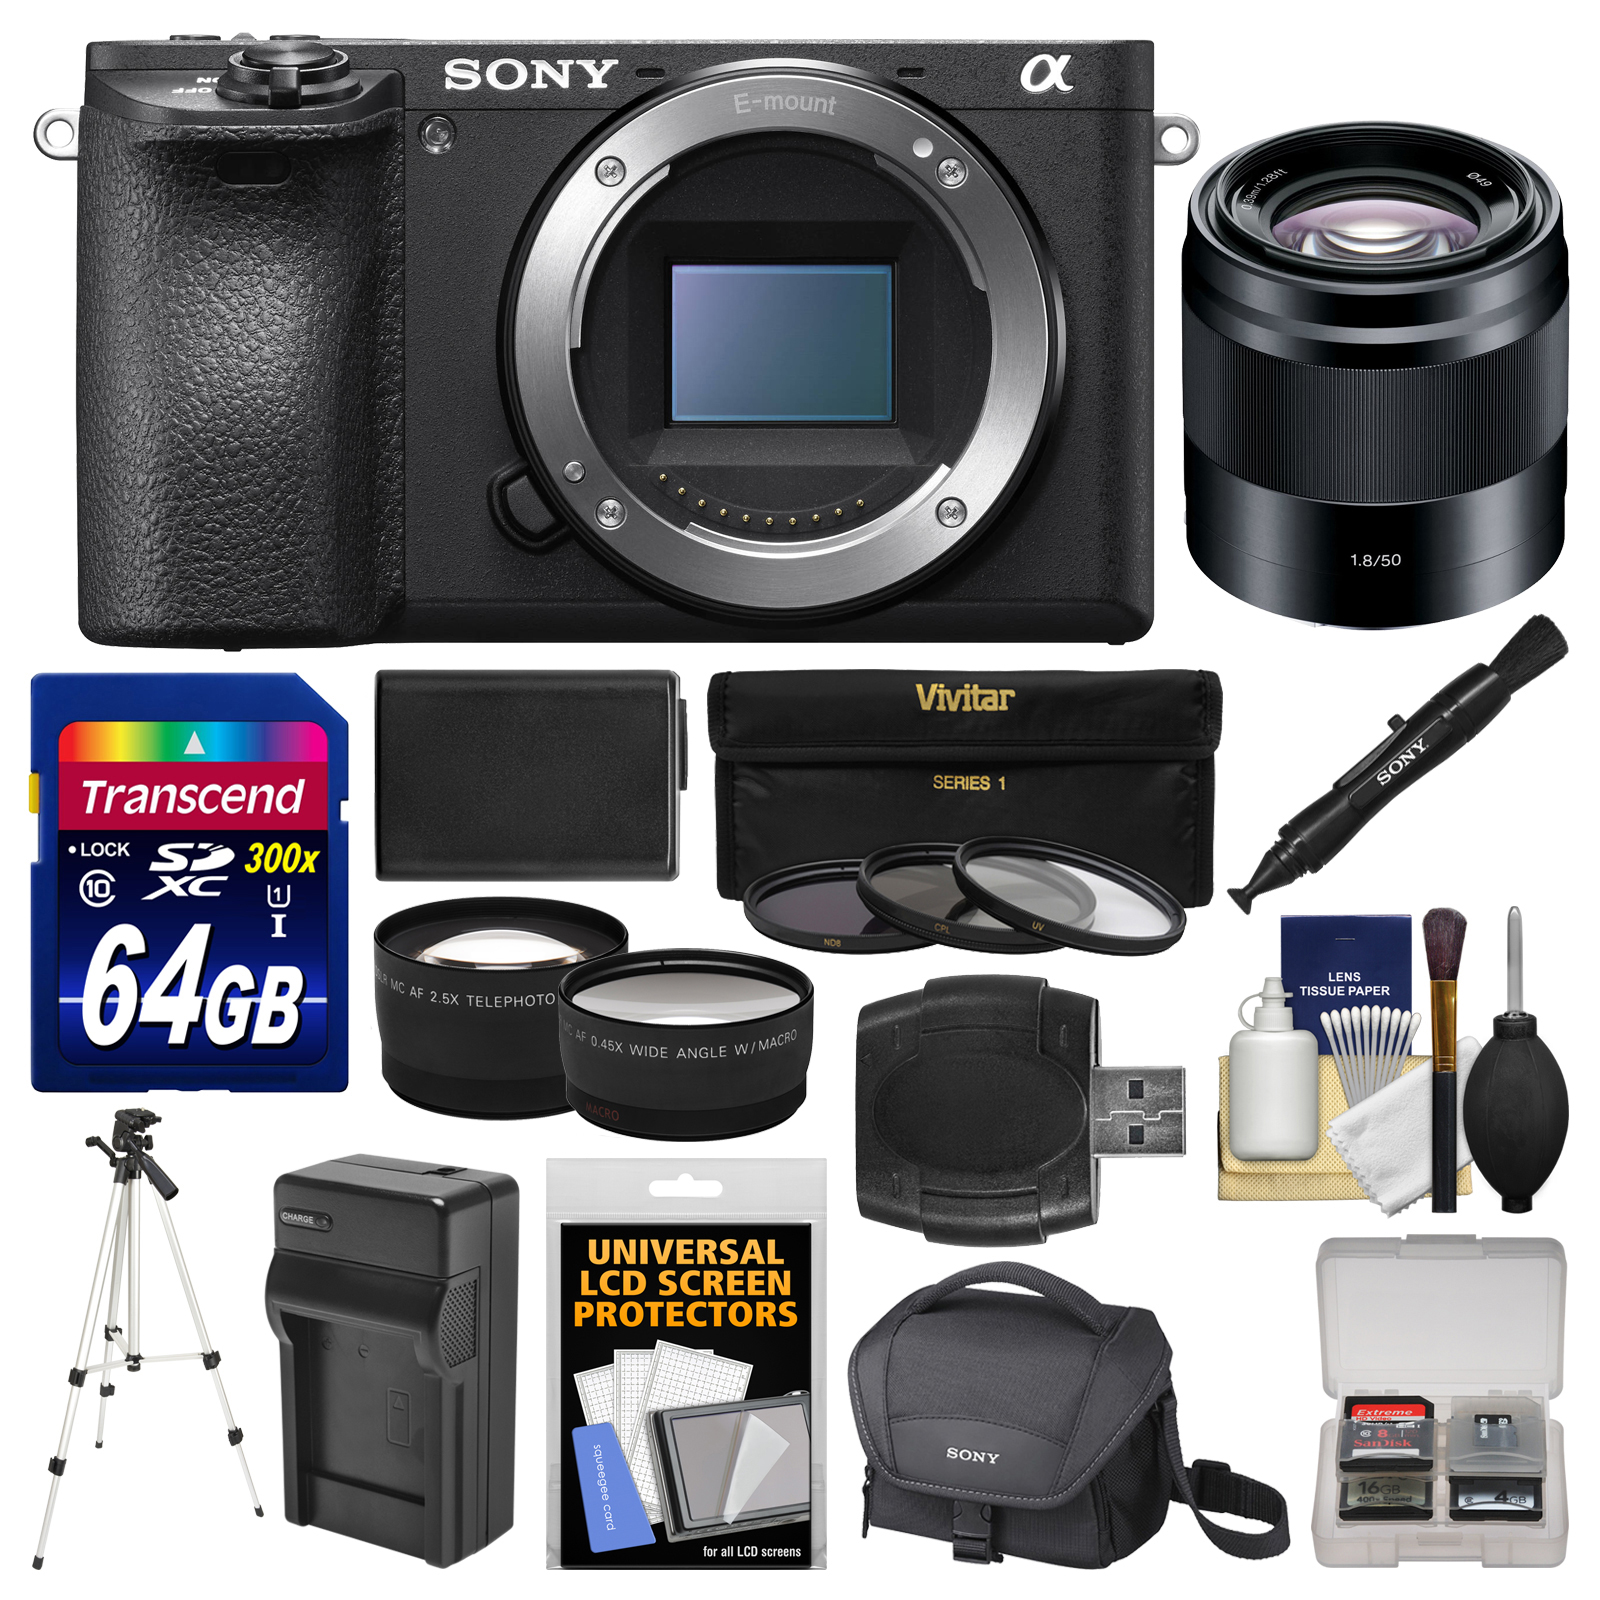 Sony Alpha A6500 4K Wi-Fi Digital Camera Body with 50mm f/1.8 Lens + 64GB Card + Case + Battery & Charger + Tripod + Tele/Wide Lens Kit